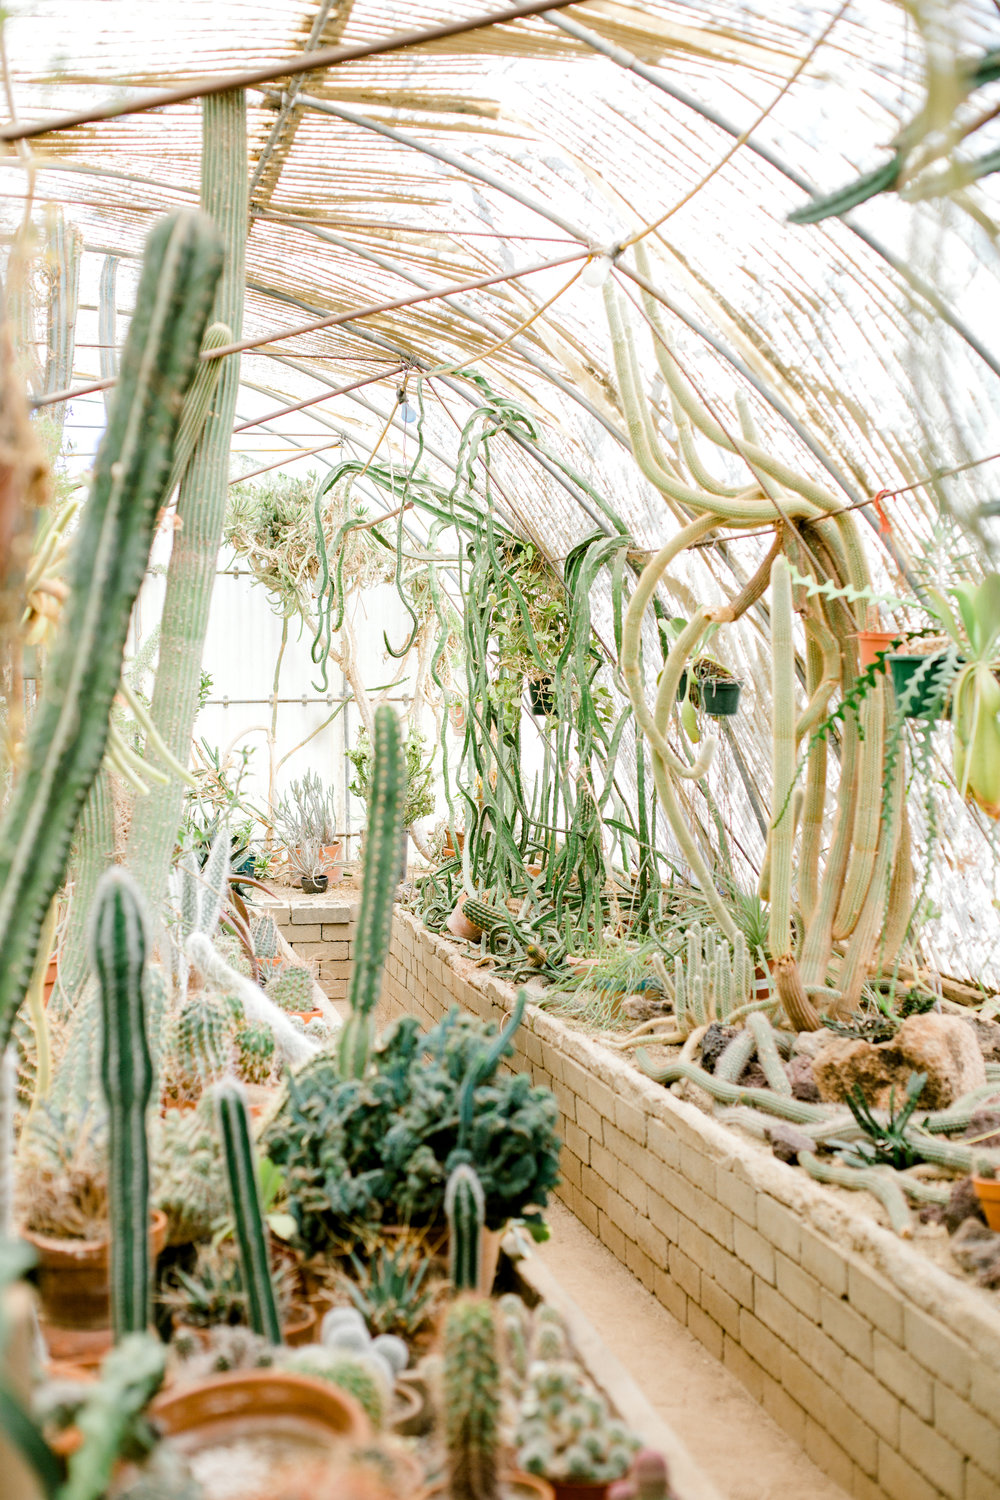 Jessica Sgubin Photography Atlanta Portrait photographer los angeles la salvation mountain greenhouse cactus garden moorten botanical garden cabazon dinosaurs santa monica joshua tree-56.jpg